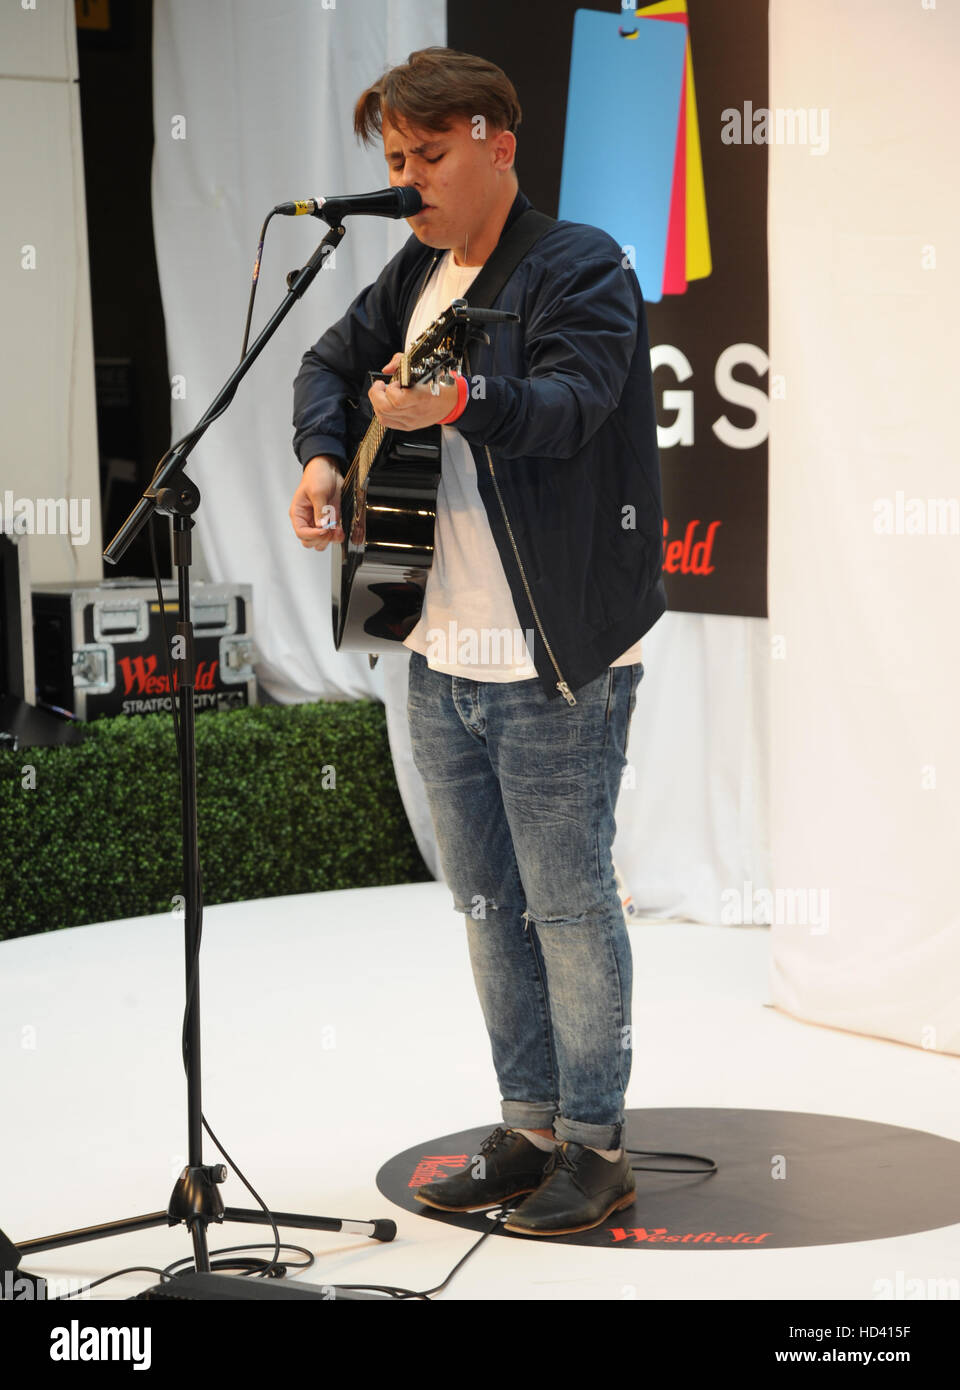 Westfield Stratford Gigs grand final  Featuring: Lewis Smith Where: London, United Kingdom When: 04 Sep 2016 Stock Photo